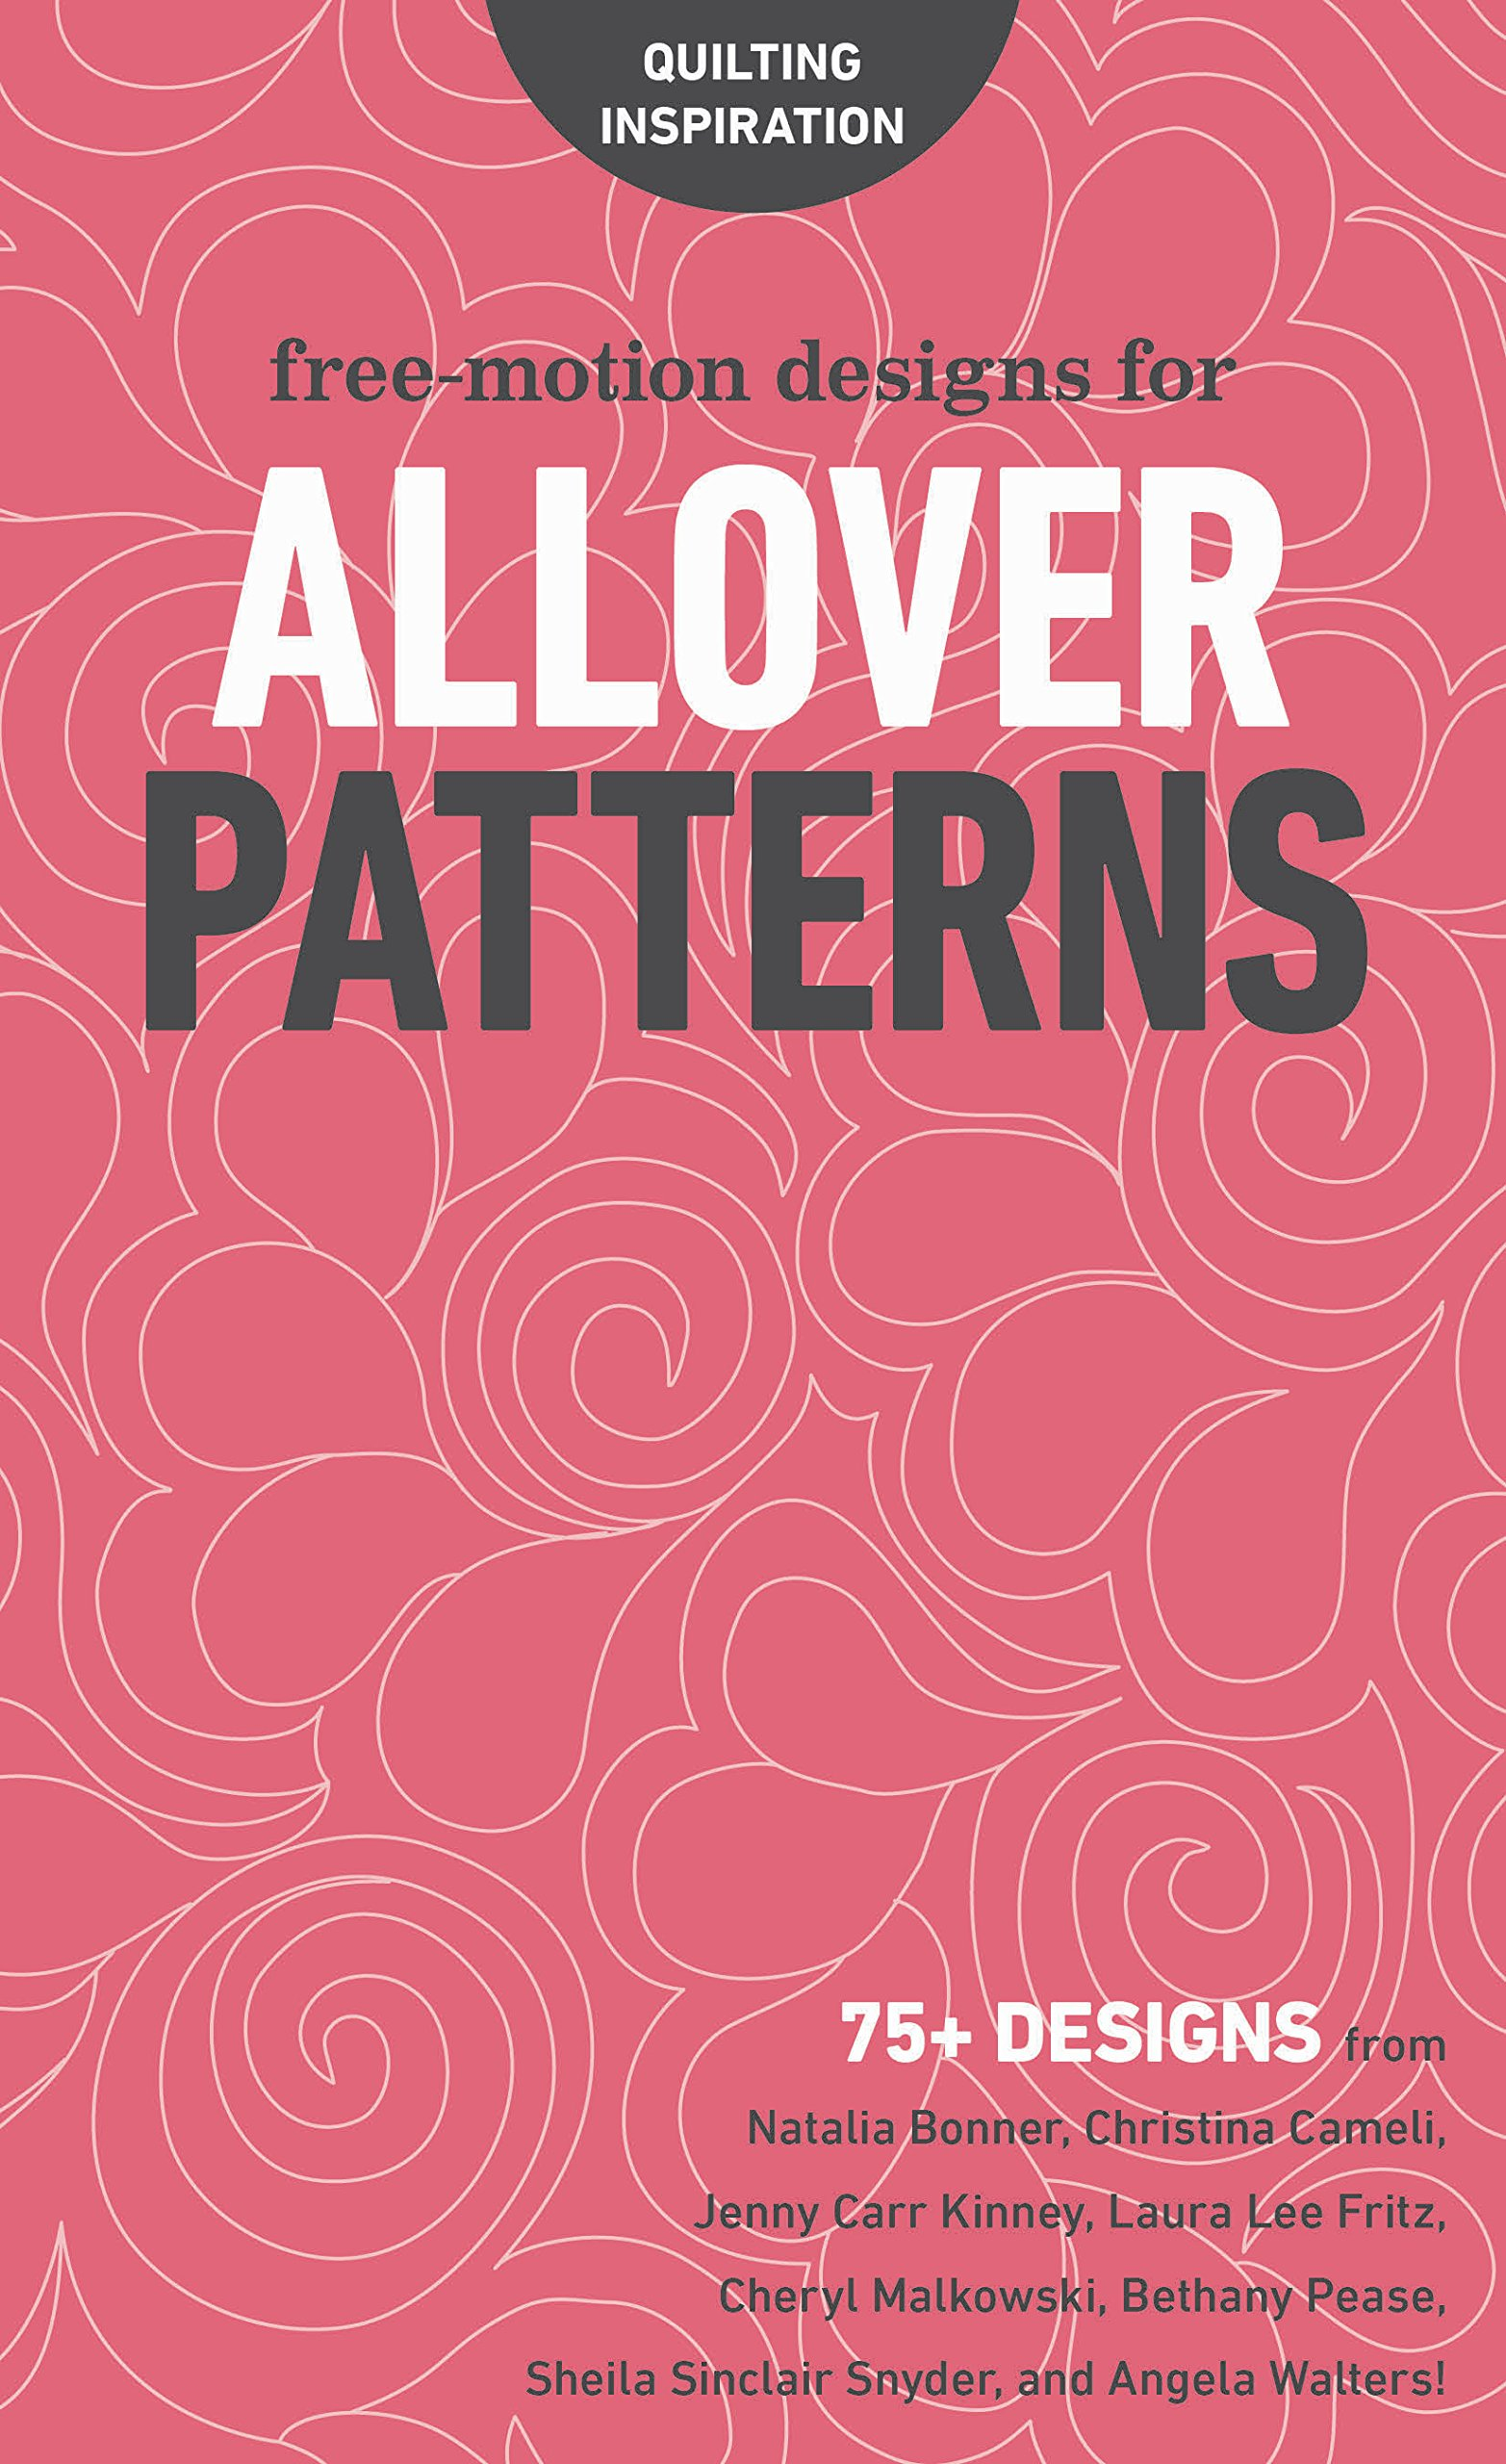 free-motion-designs-for-allover-patterns-75-designs-from-natalia-bonner-christina-cameli-jenny-carr-kinney-laura-lee-fritz-cheryl-malkowski-sheila-sinclair-snyder-and-angela-walters